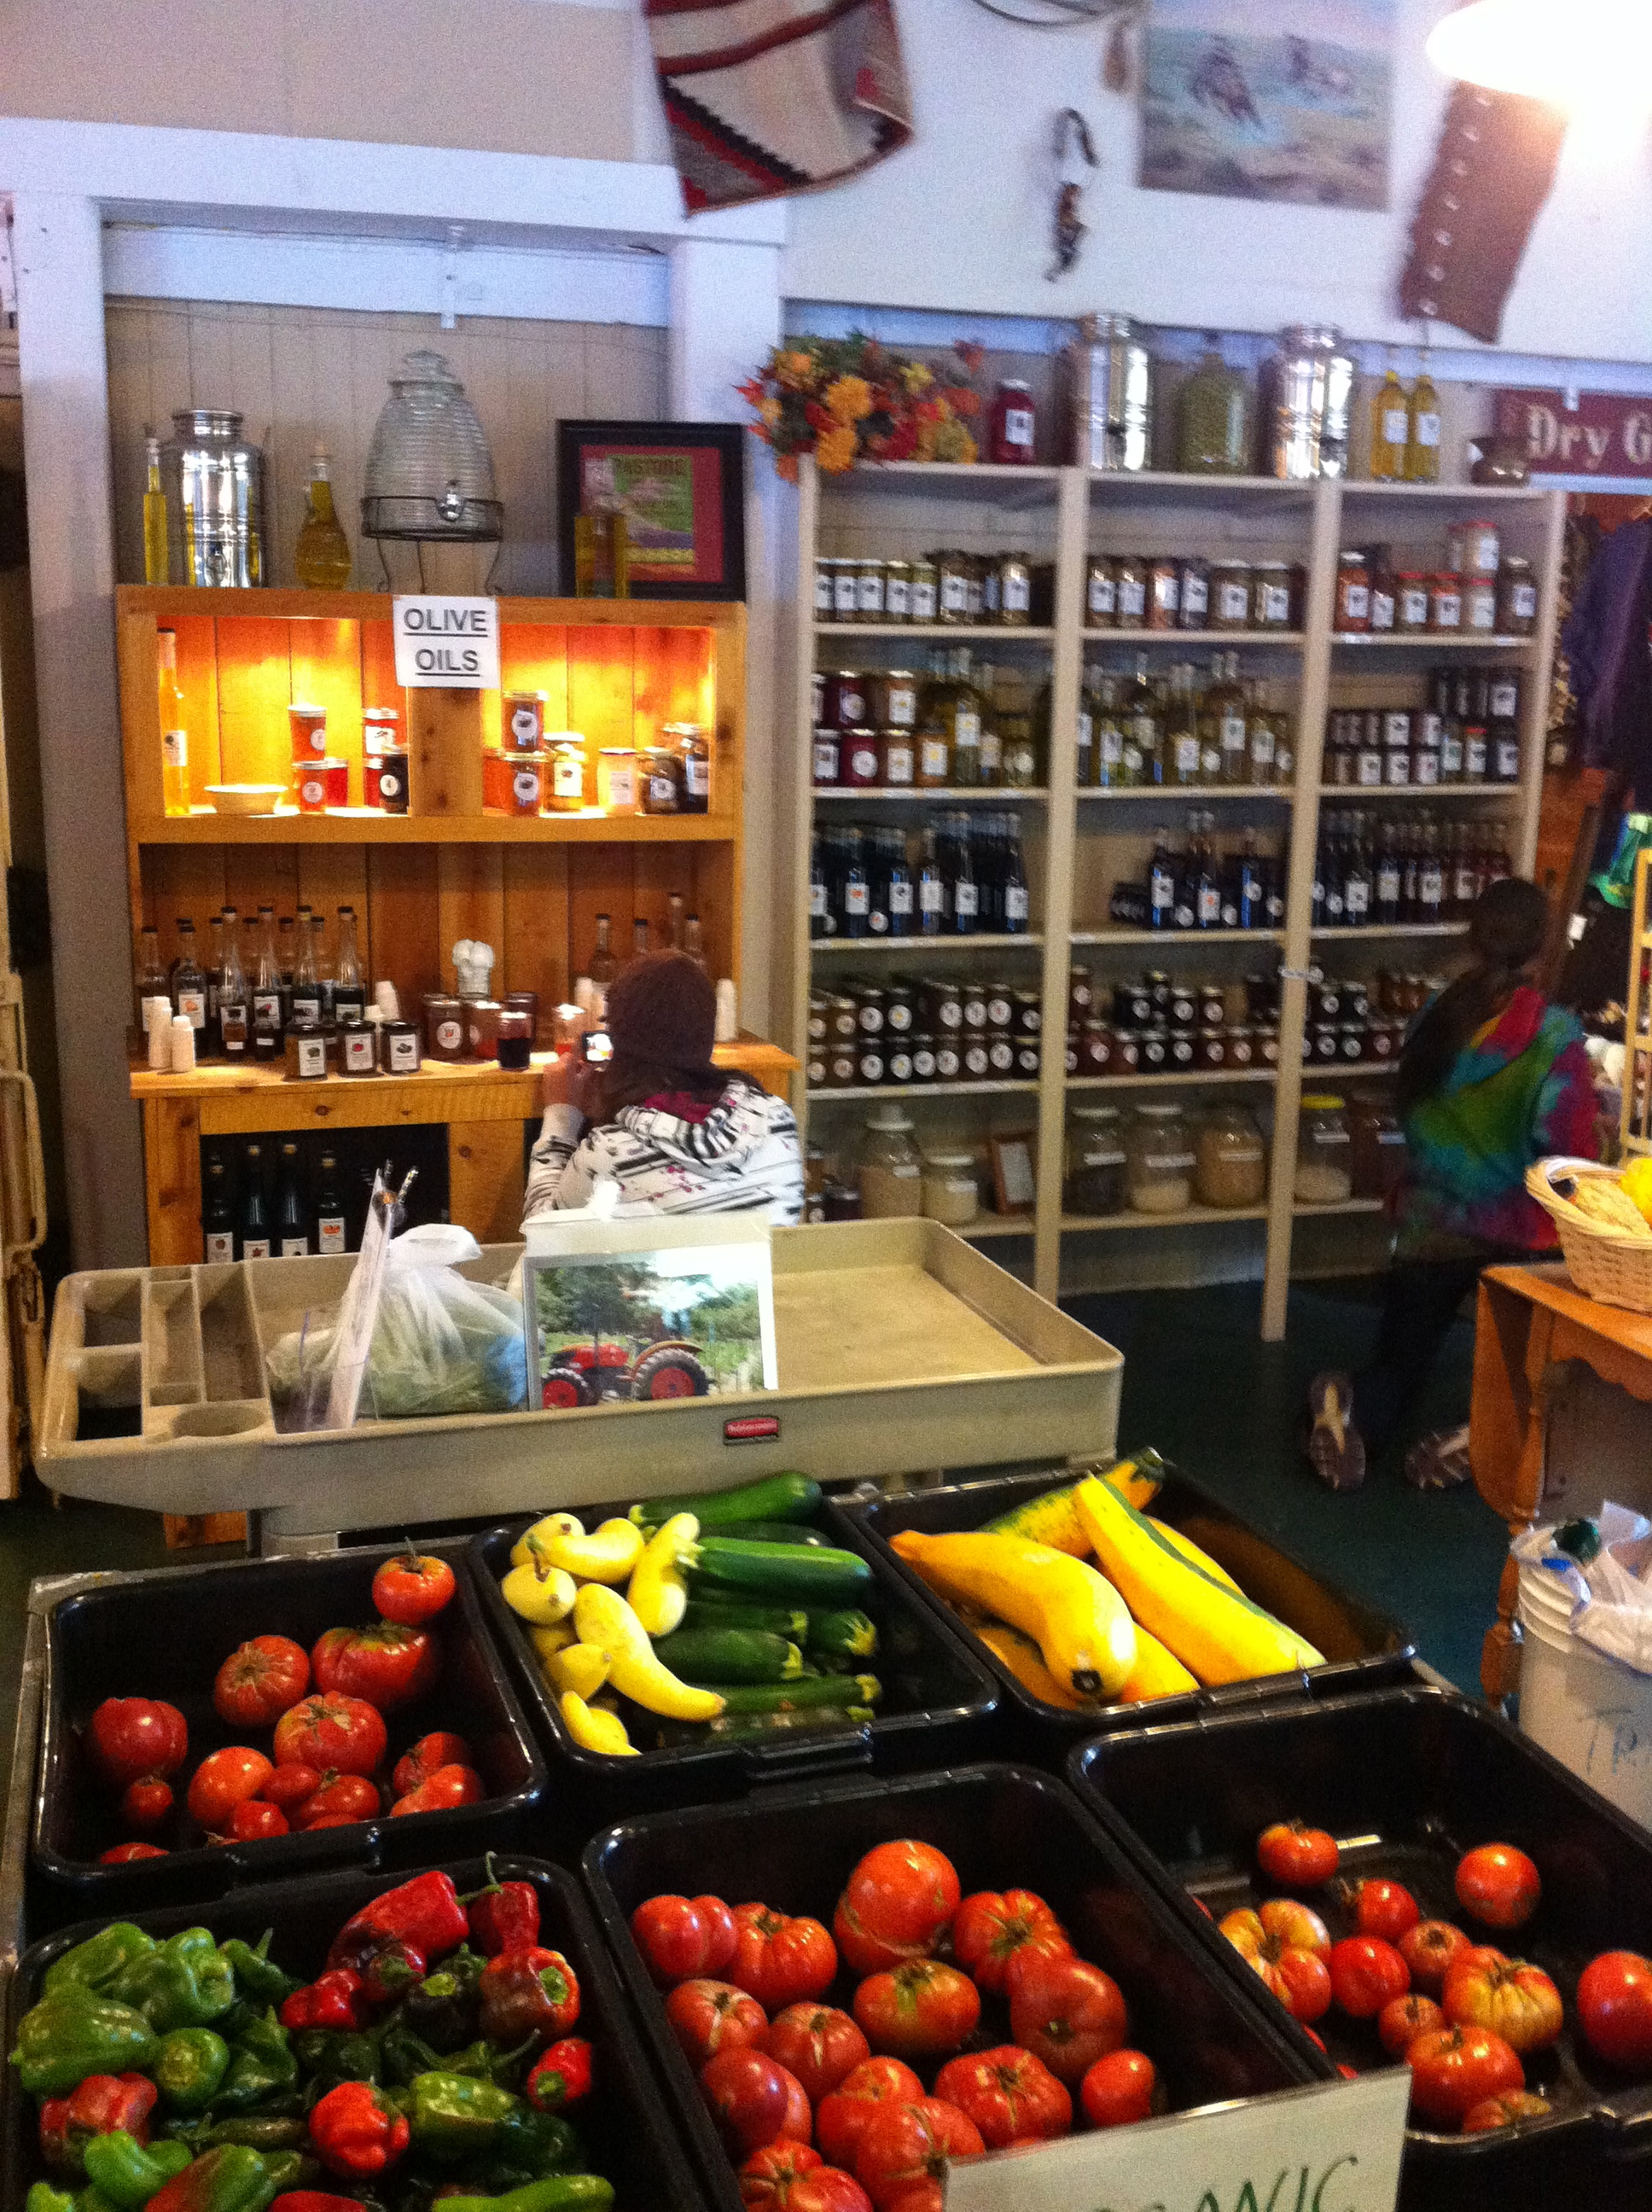 Wynola Flats Produce | What's not to like?